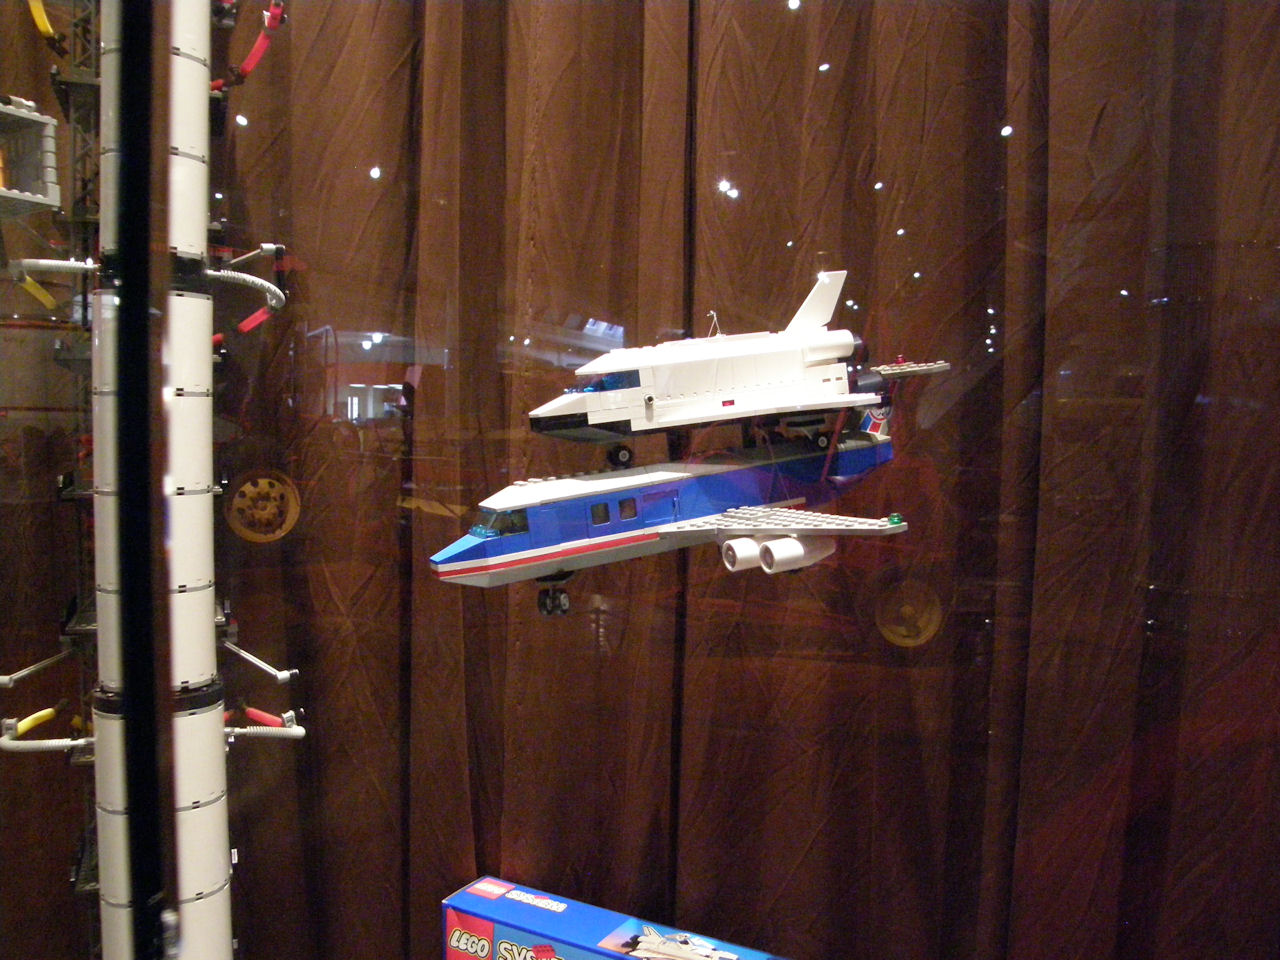 lego space shuttle and plane - photo #14